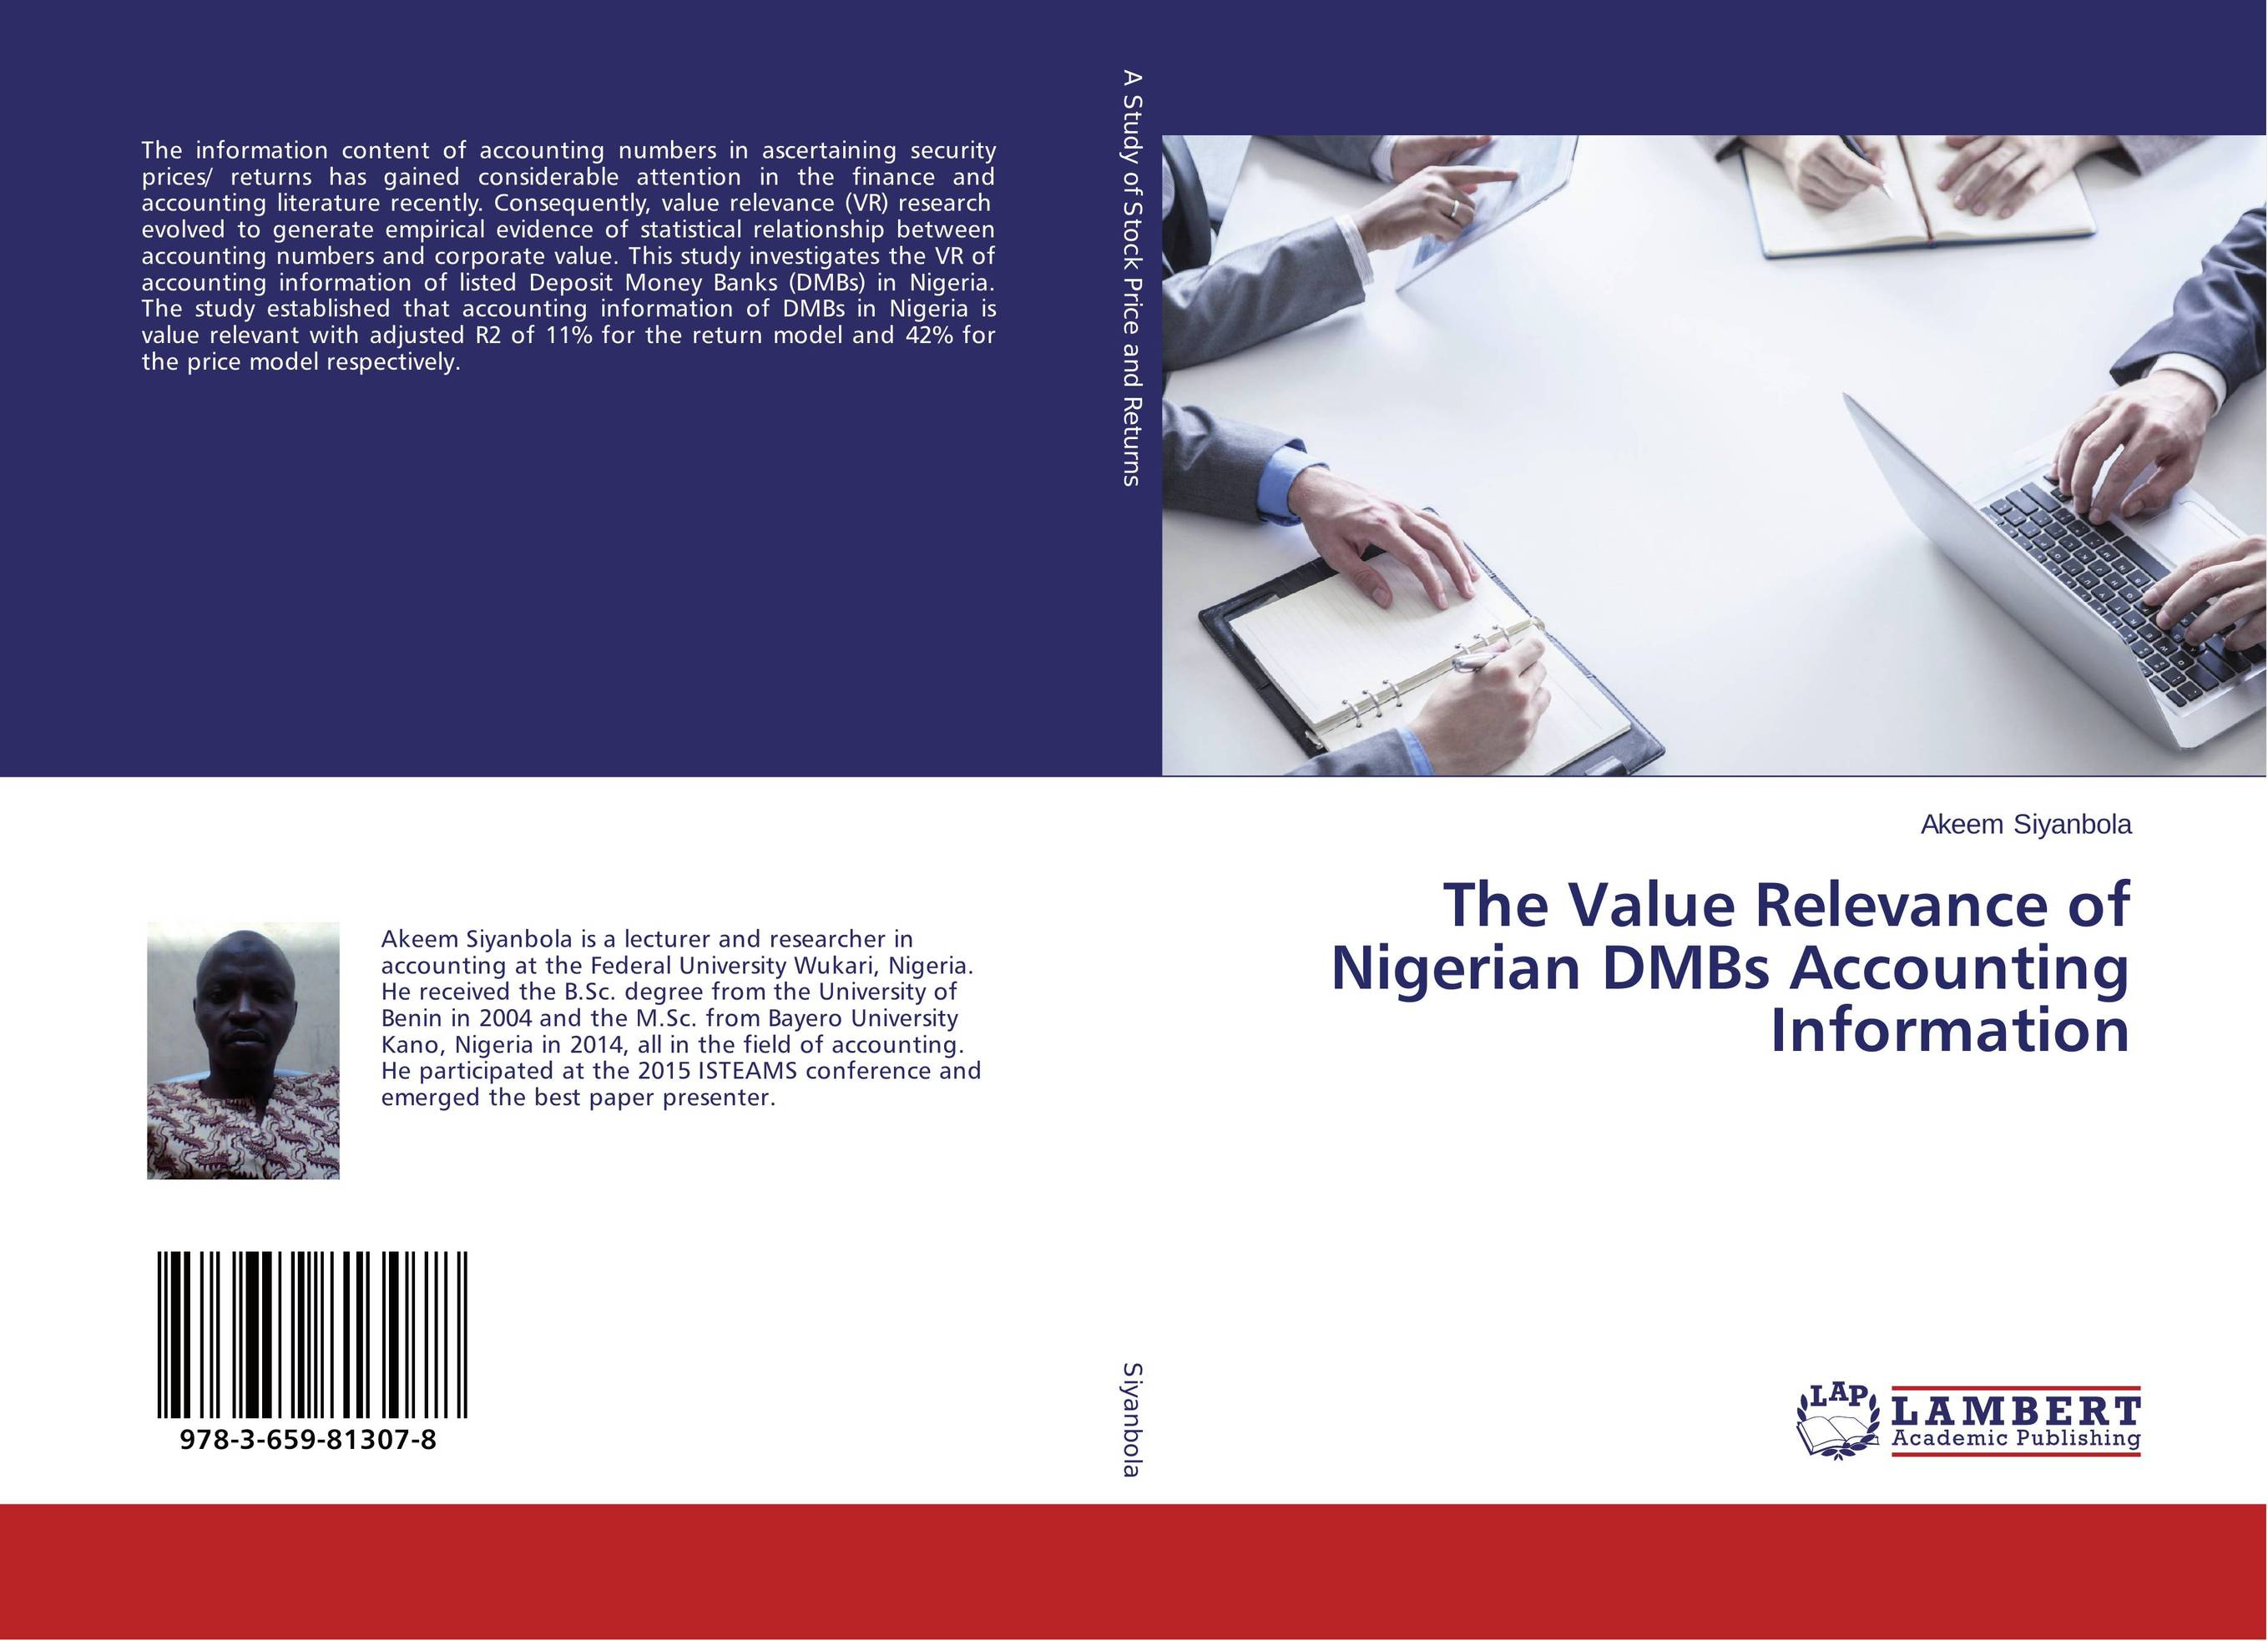 The Value Relevance of Nigerian DMBs Accounting Information the role of accounting information and the relevance of ifrs